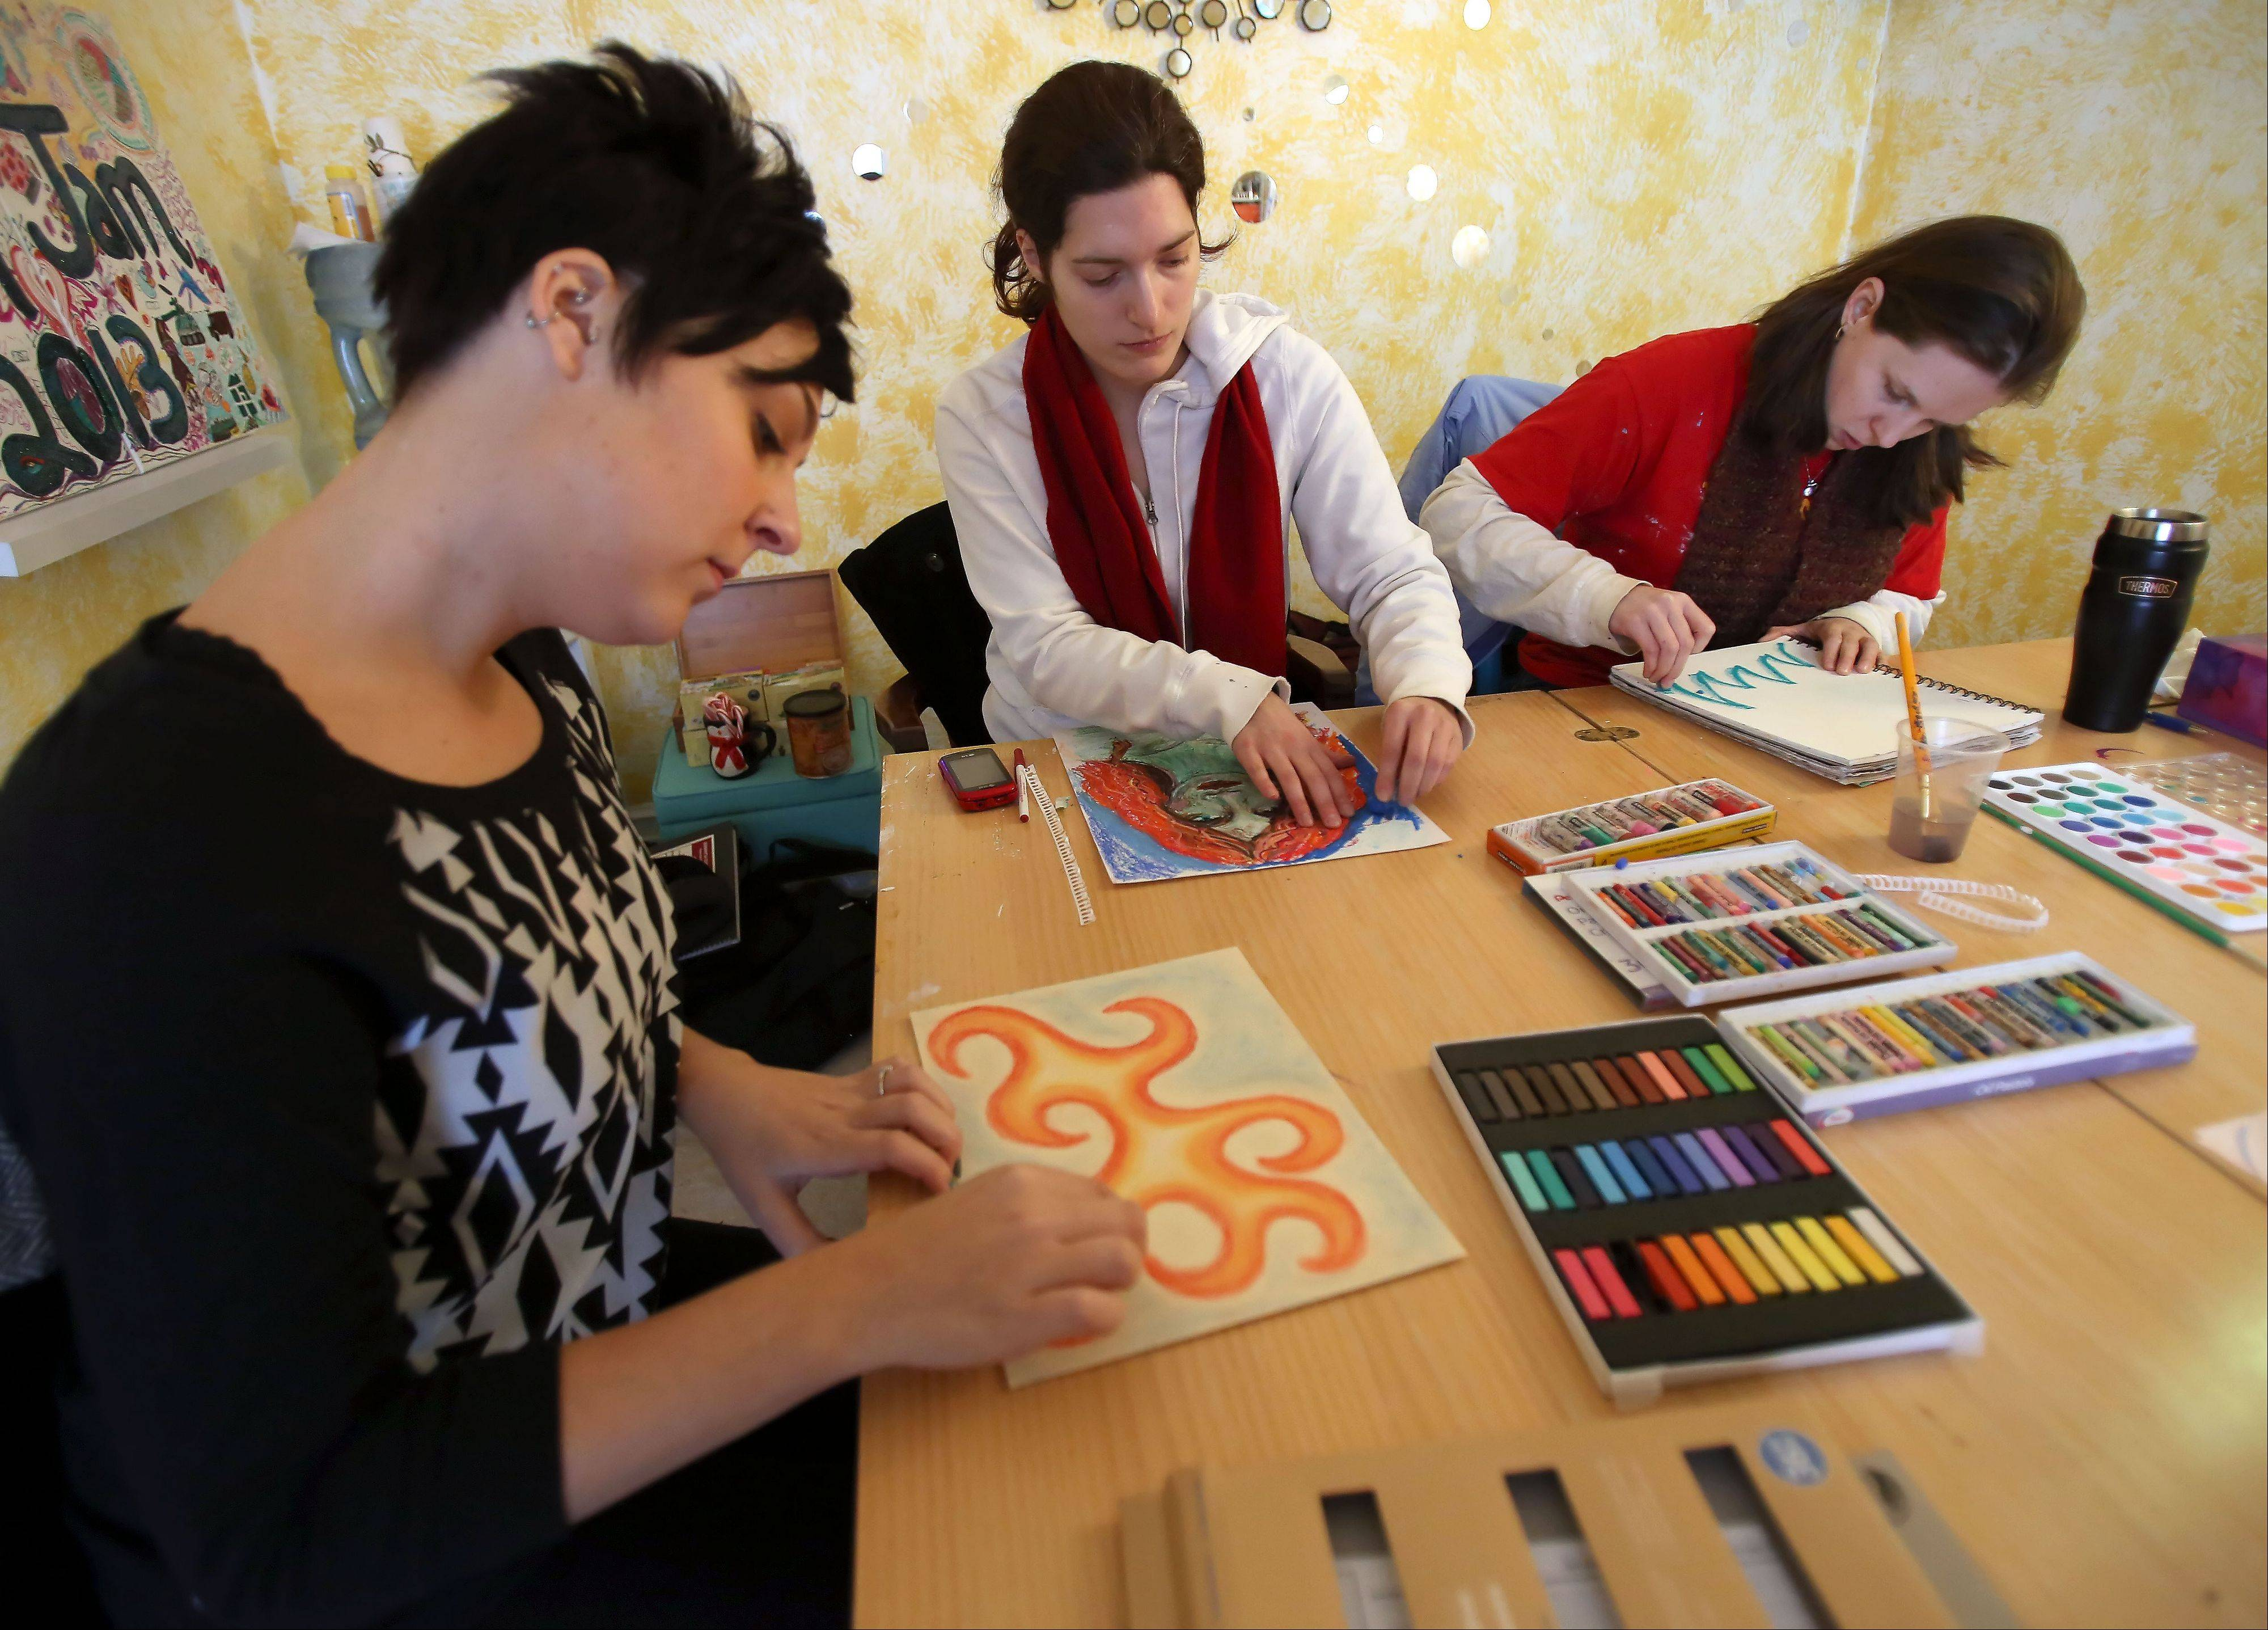 Lisa Kolodziej of Hammond, Ind., Carla DePalma of Glen Ellyn and Briana Colton of Chicago work on pictures in art therapy class led by Melissa Hedlund.